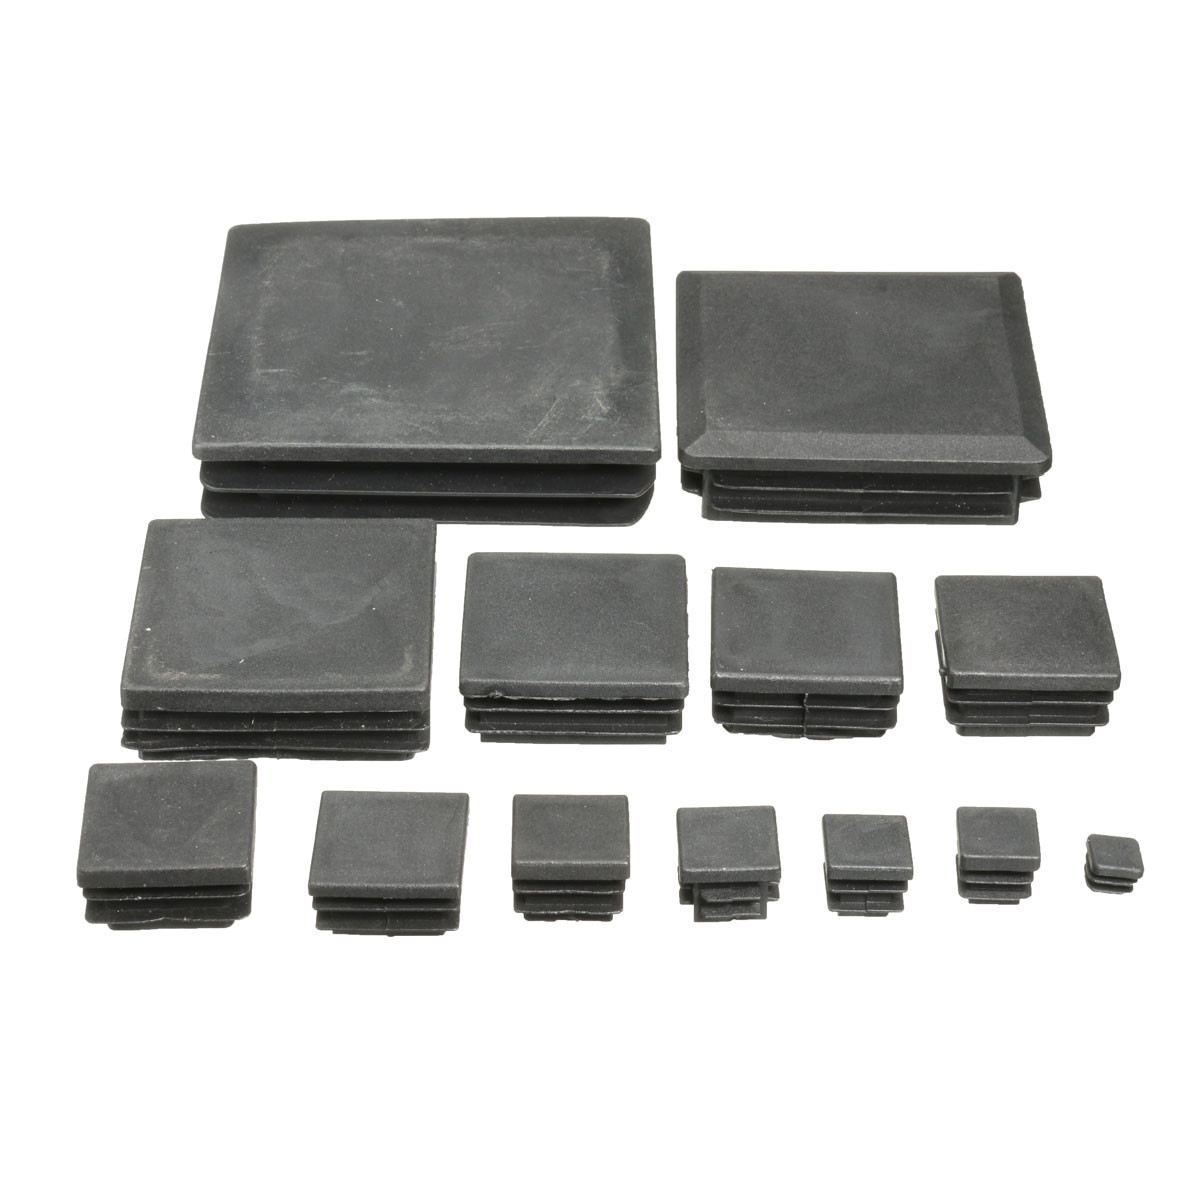 Plastic Square Black Blanking End Cap Inserts Plug Cover for Tube Pipe Section 13 Sizes